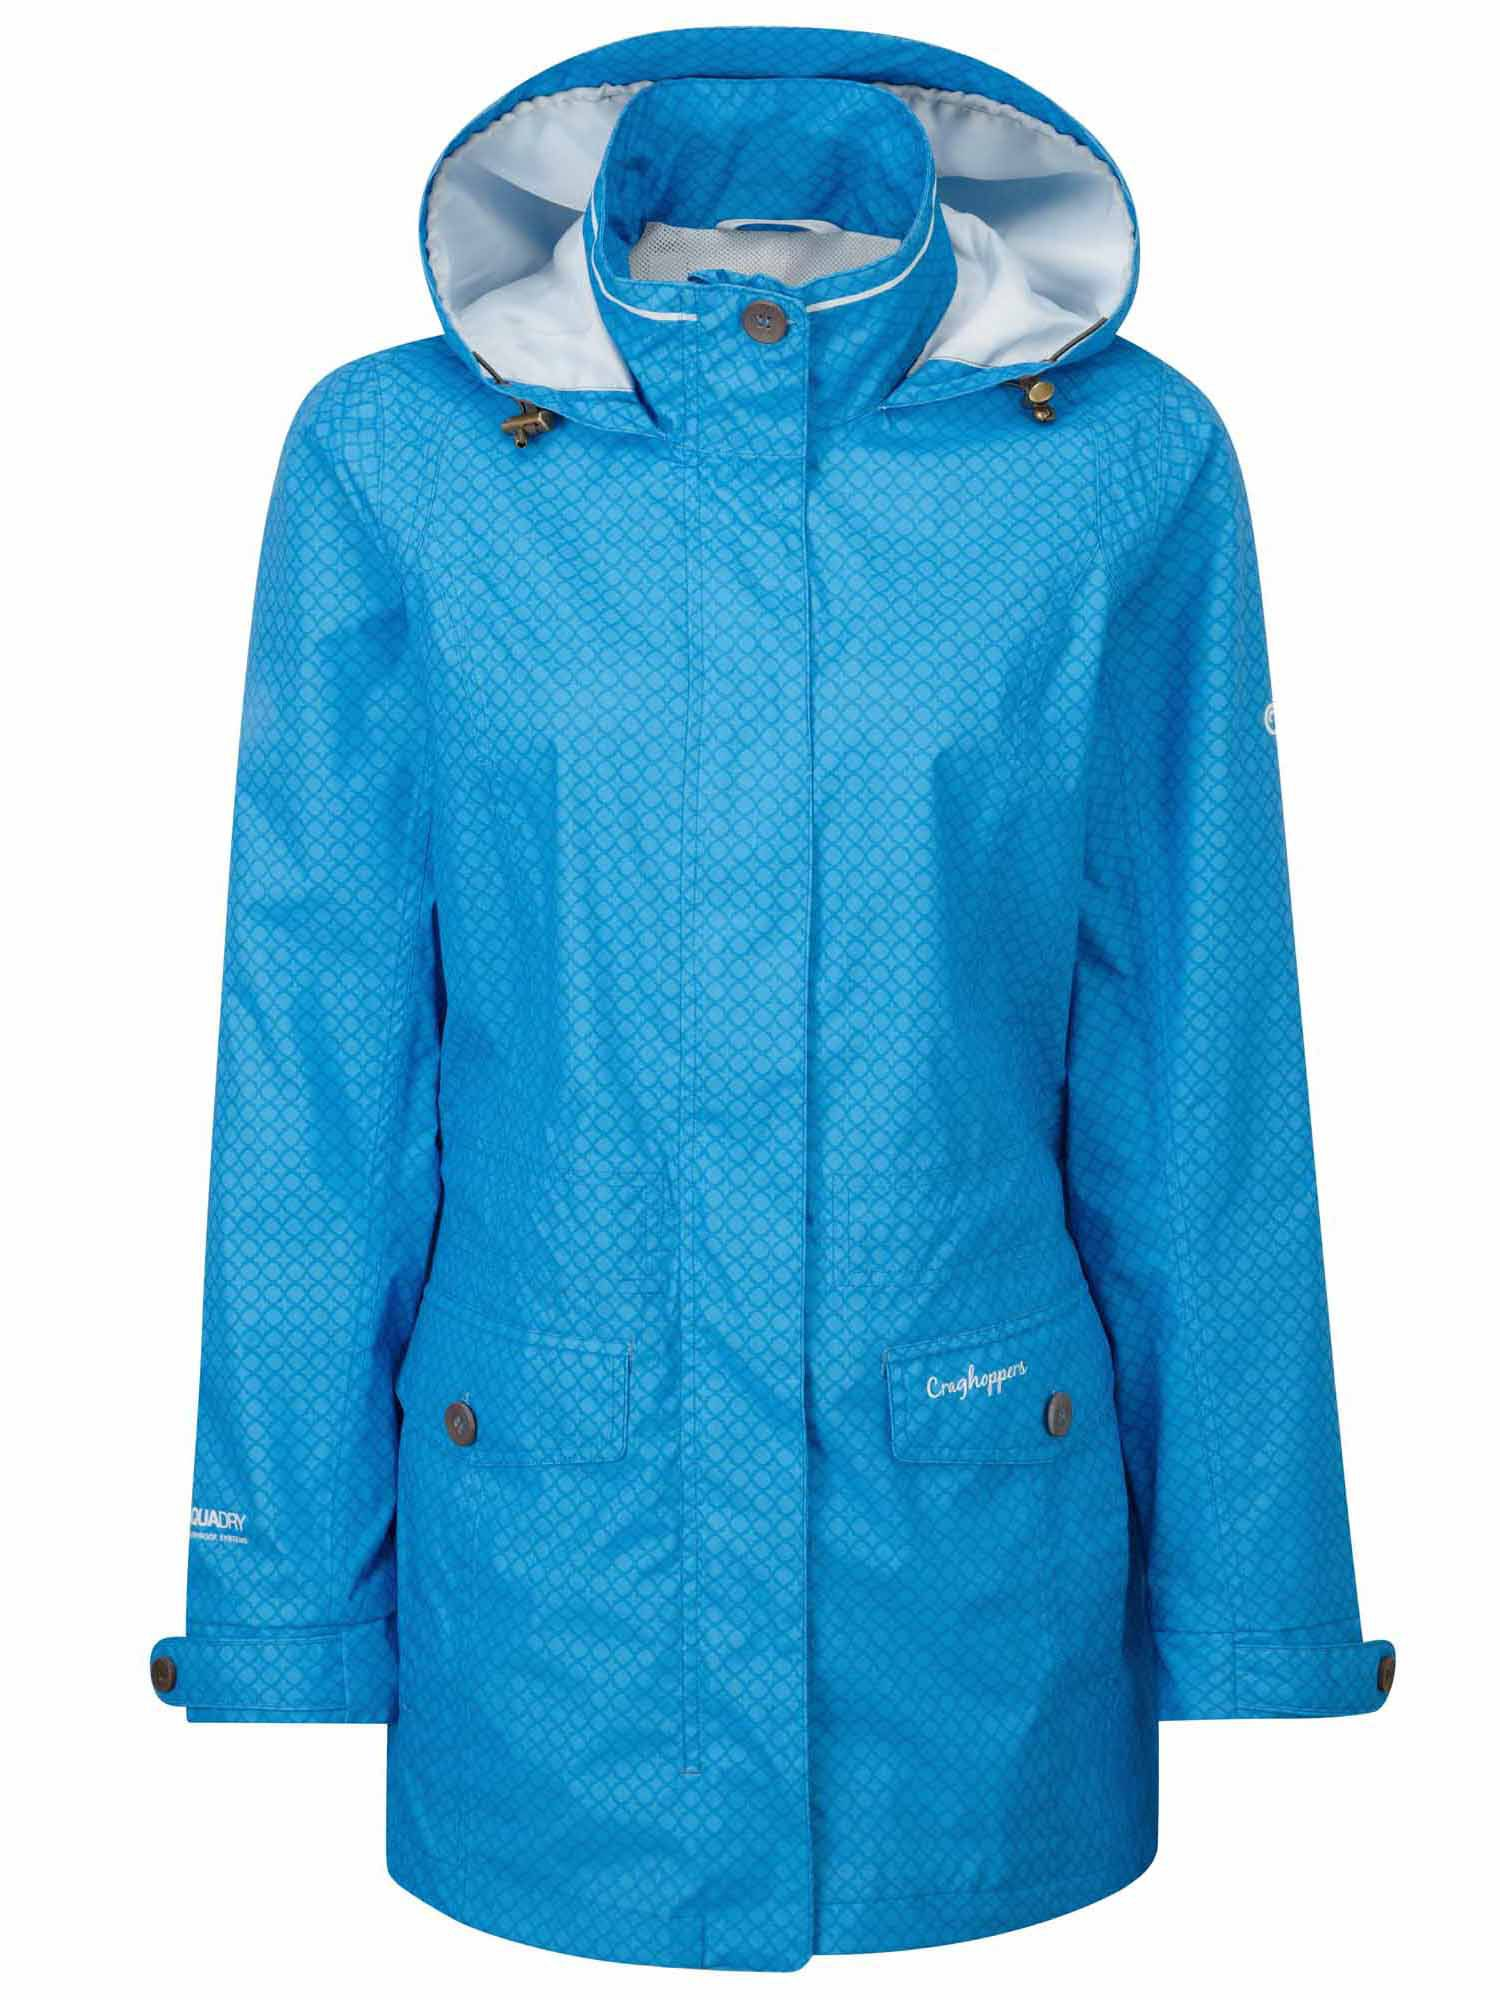 Craghoppers Craghoppers Tallie Jacket, Blue